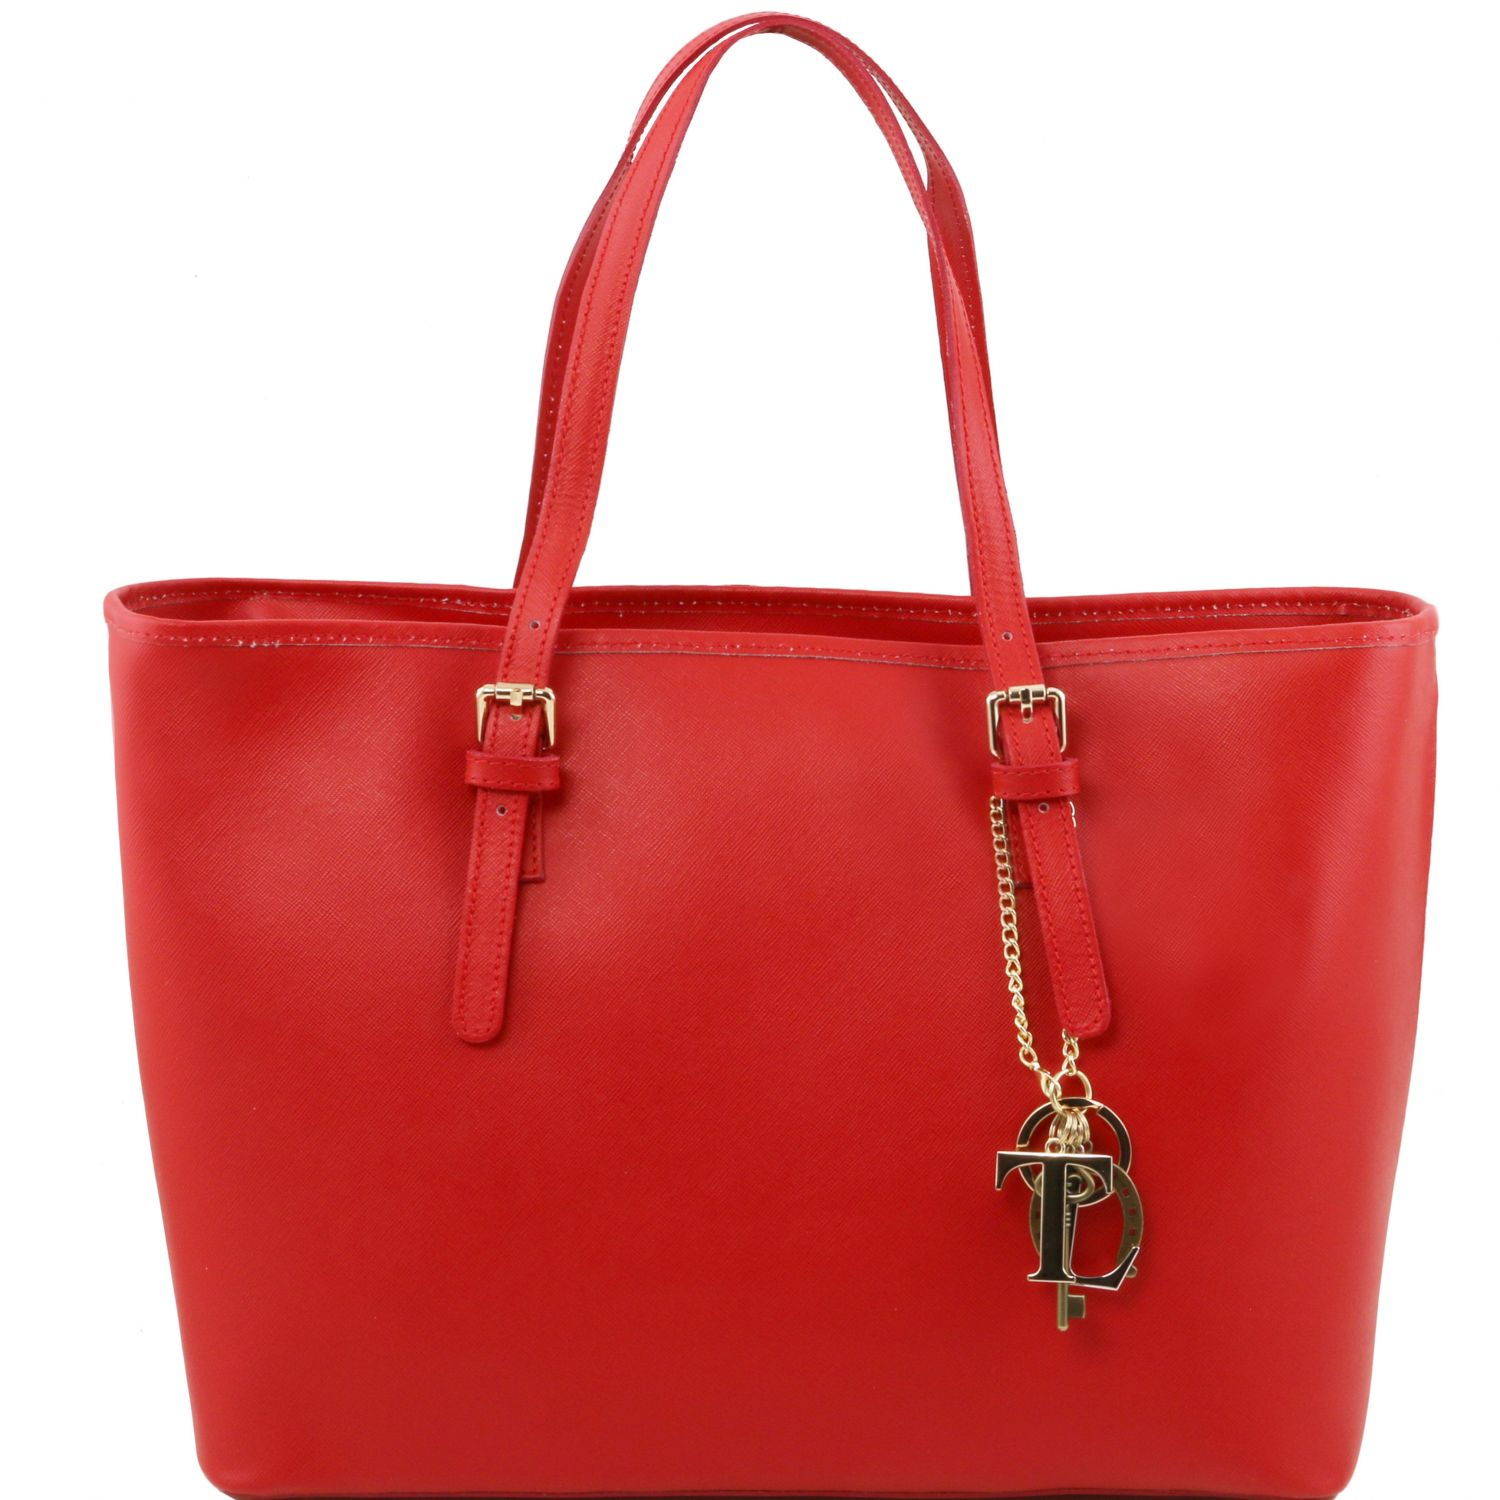 TL KeyLuck - Saffiano leather shopping bag with two handles red